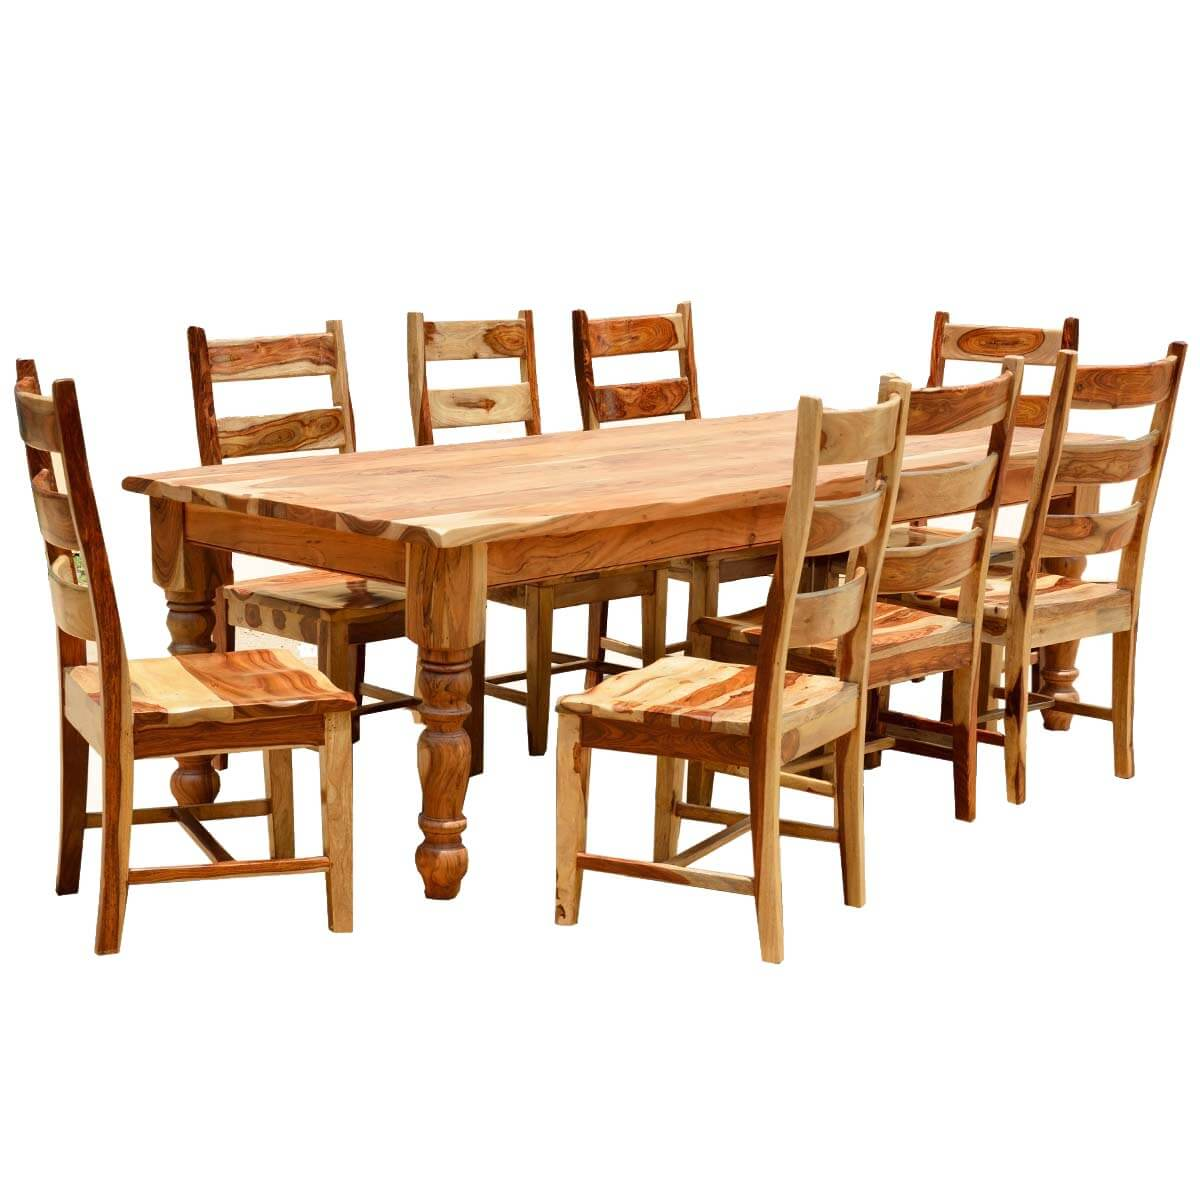 Wooden Dining Table Set ~ Rustic solid wood farmhouse dining room table chair set